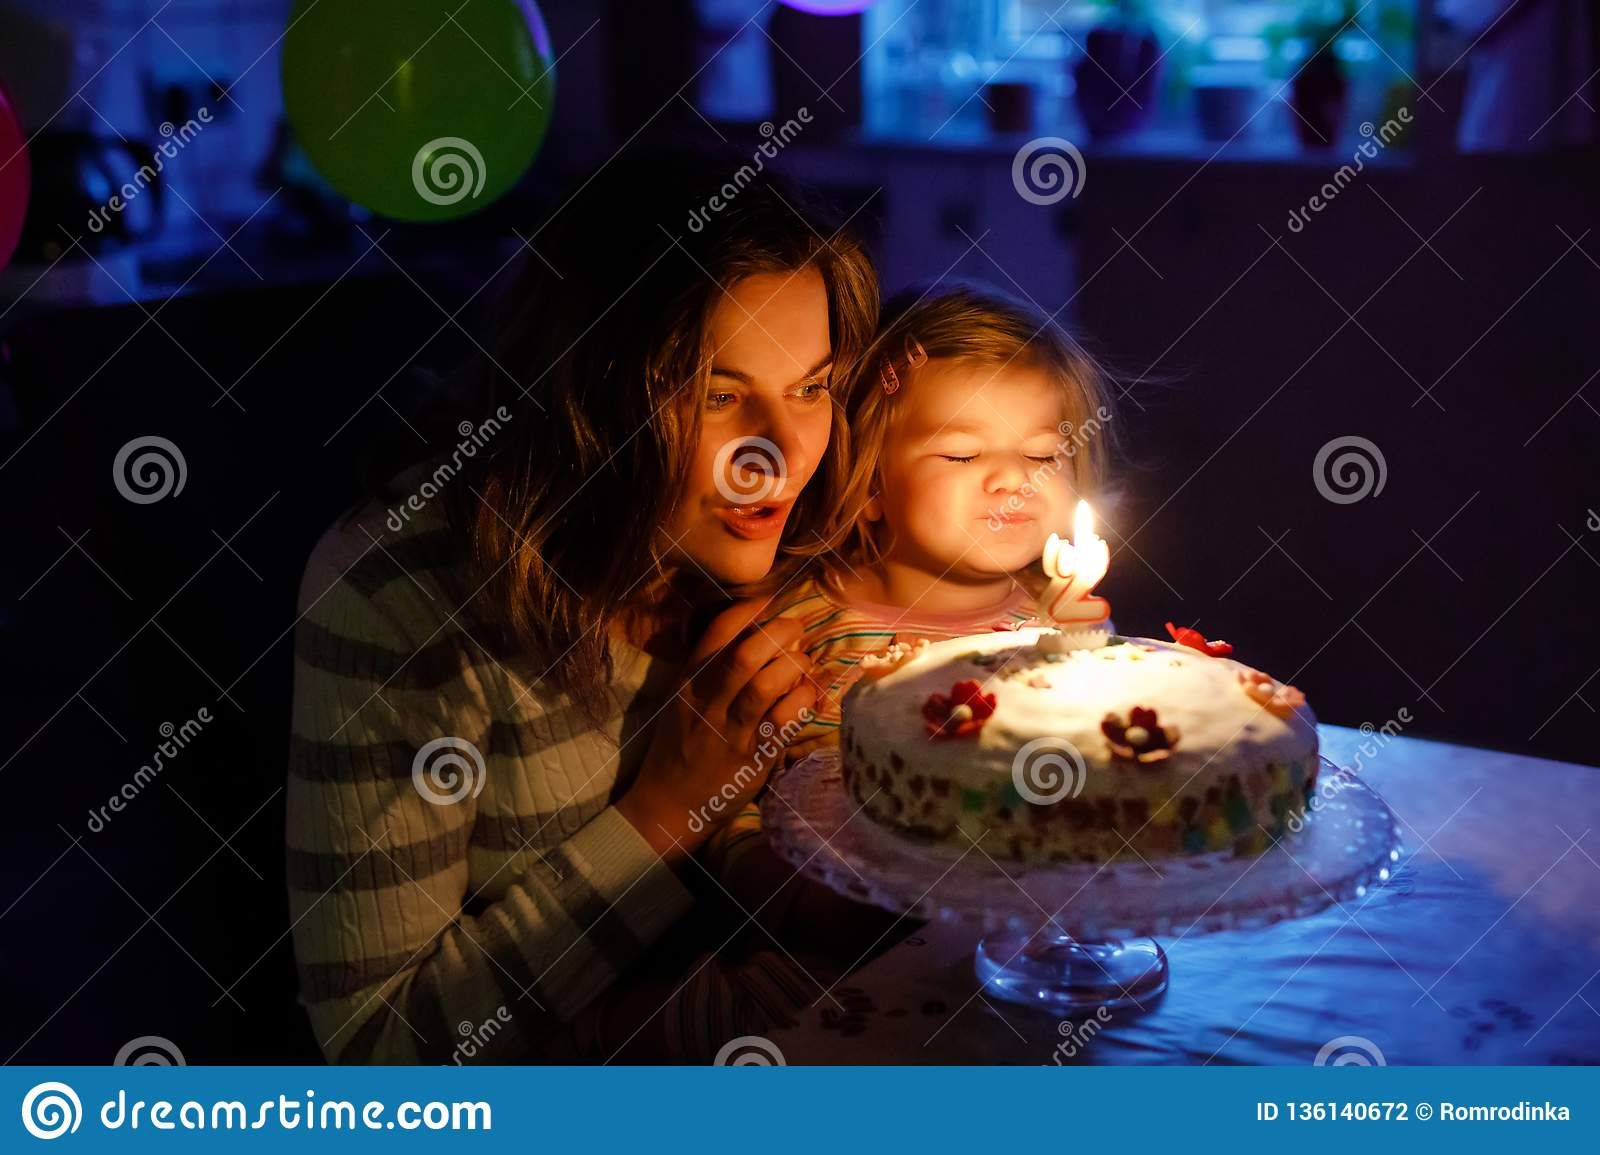 Adorable little toddler girl celebrating second birthday. Baby child daughter and young mother blowing candles on cake